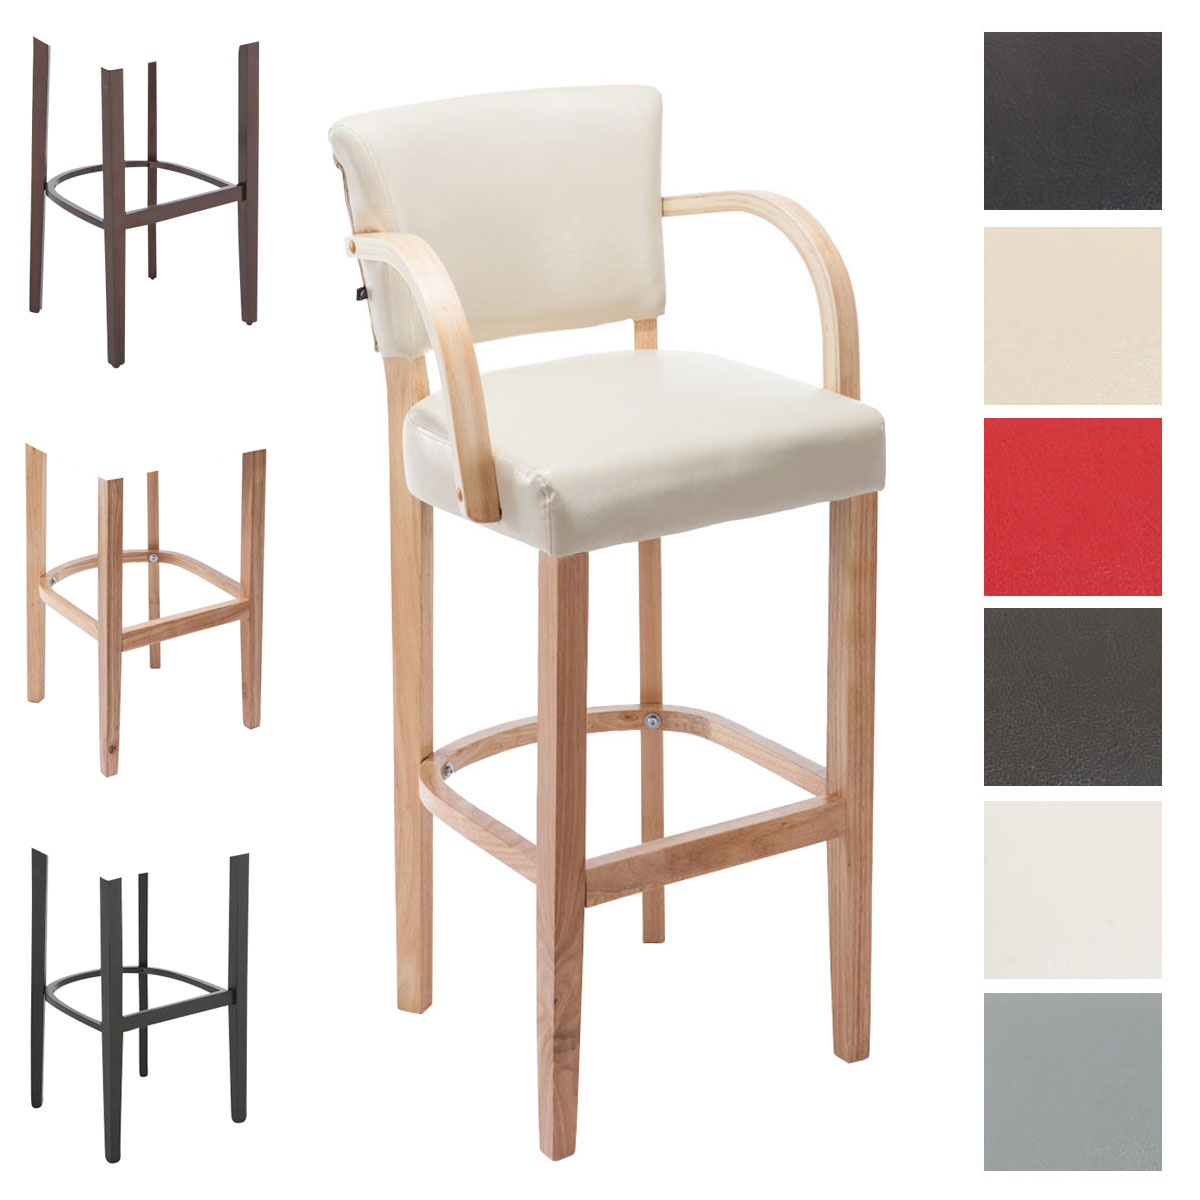 Bar Stool Lionel With Armrests Rubber Wood Modern Barstool  : 14635831713608f79039 from www.ebay.co.uk size 1200 x 1200 jpeg 106kB